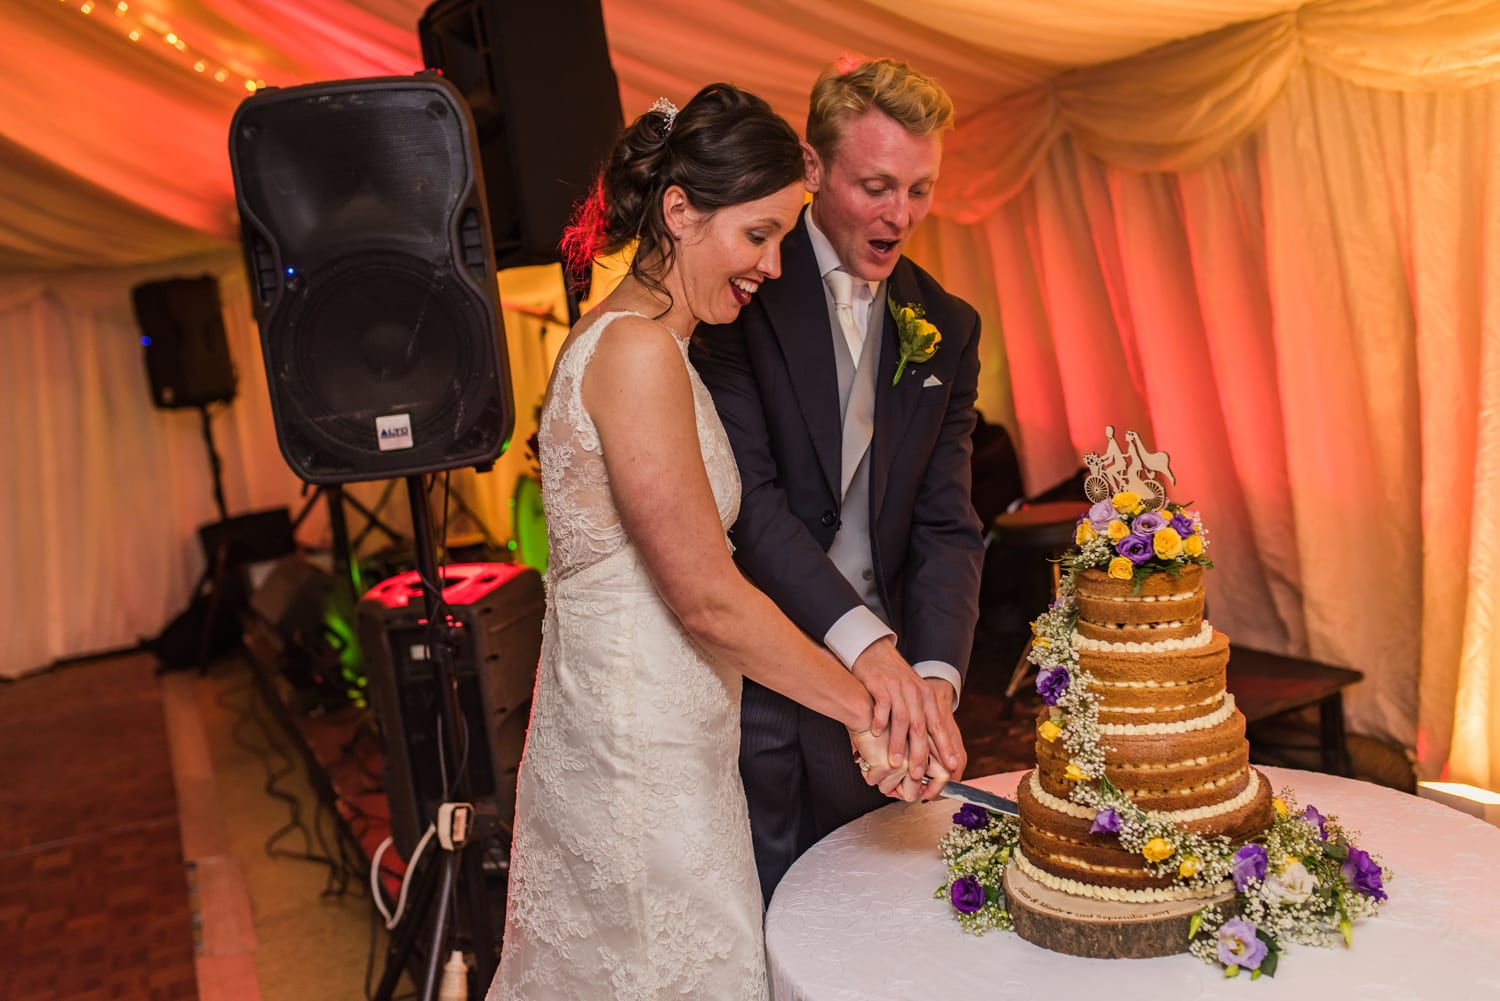 110-bride-and-groom-cut-cake.jpg